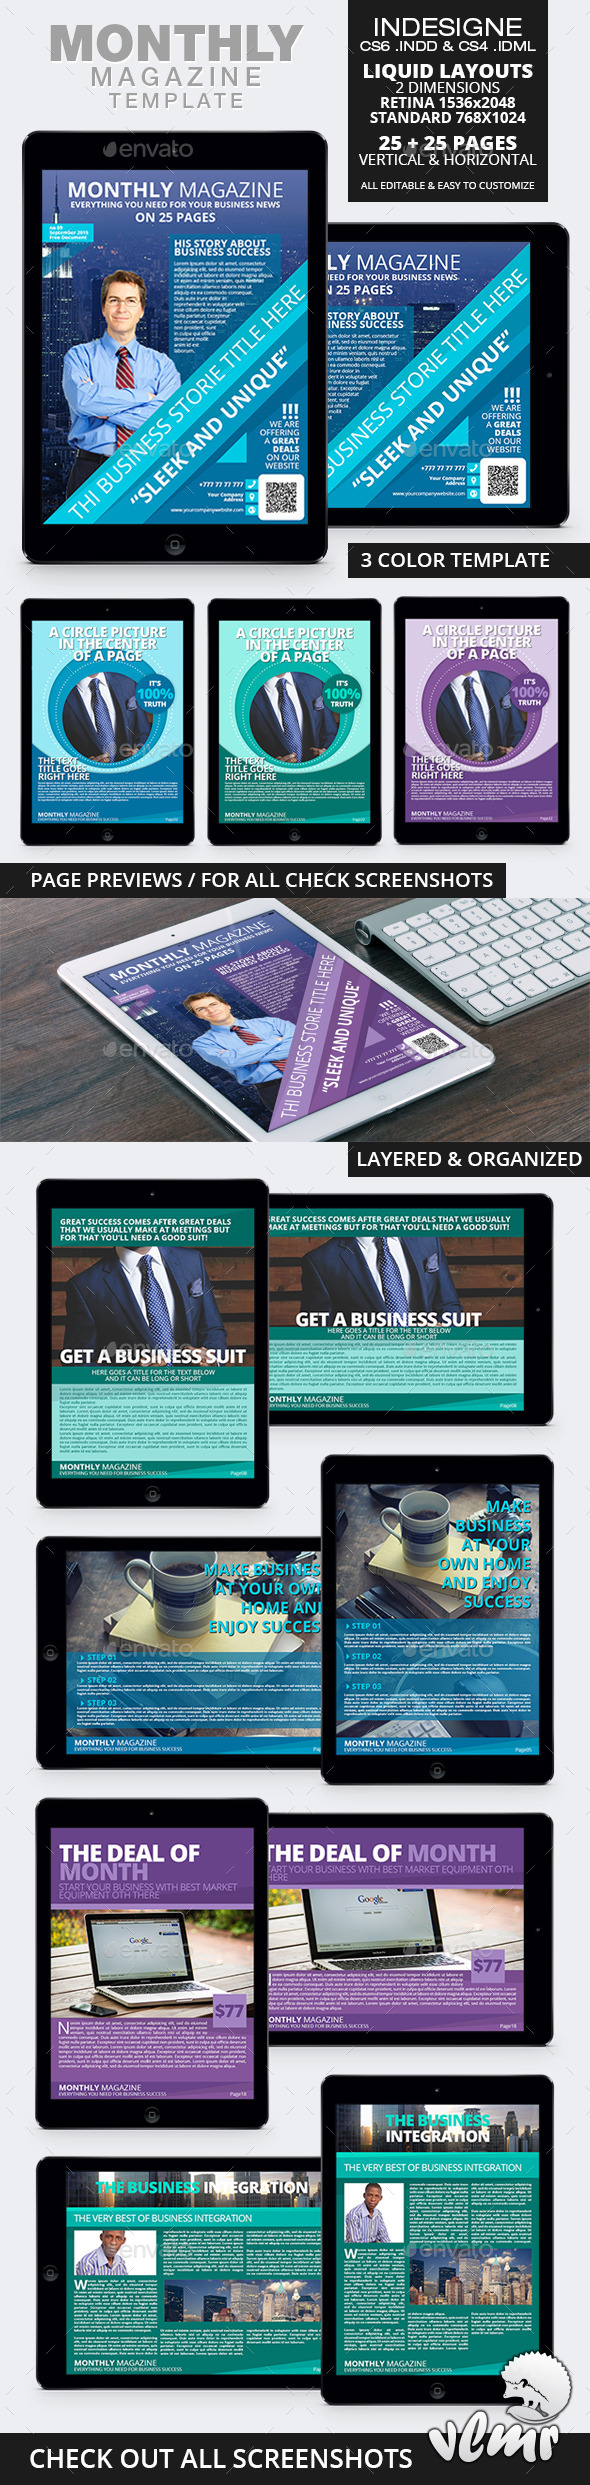 GraphicRiver Monthly Magazine Tablet Template 11033592